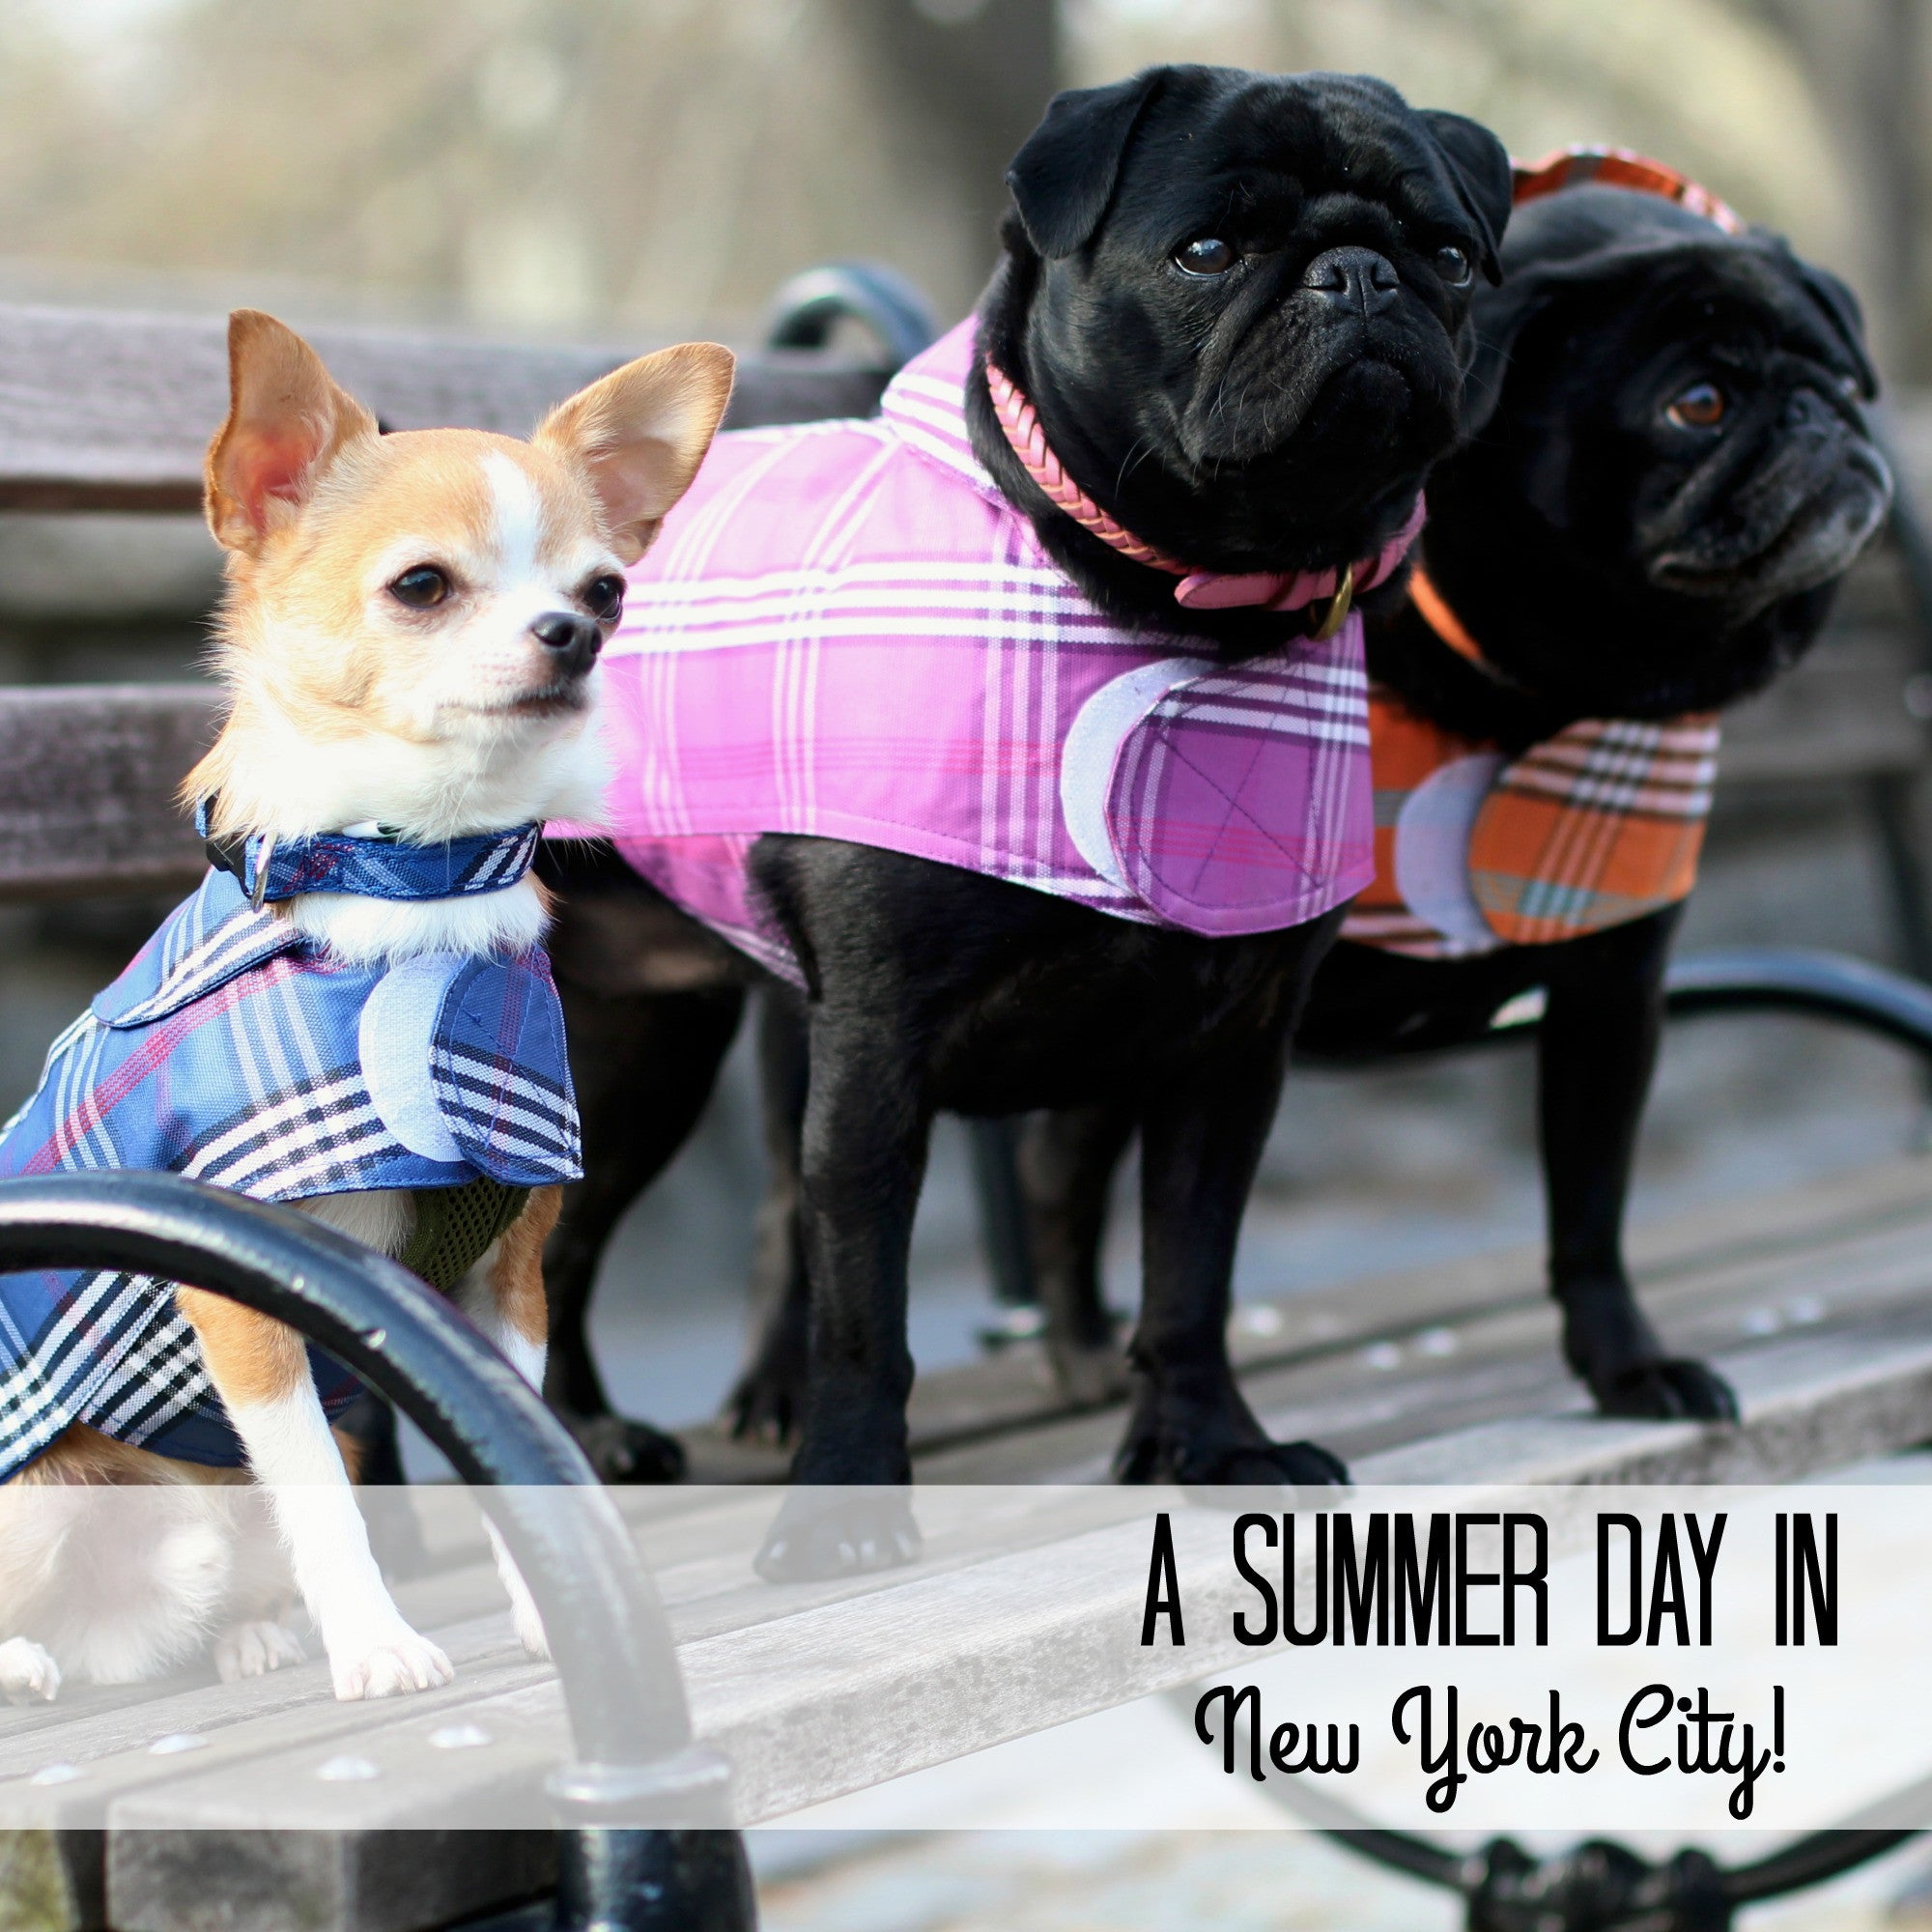 DONE - Whats Trending this Summer In Dog Fashion - New York City Version!